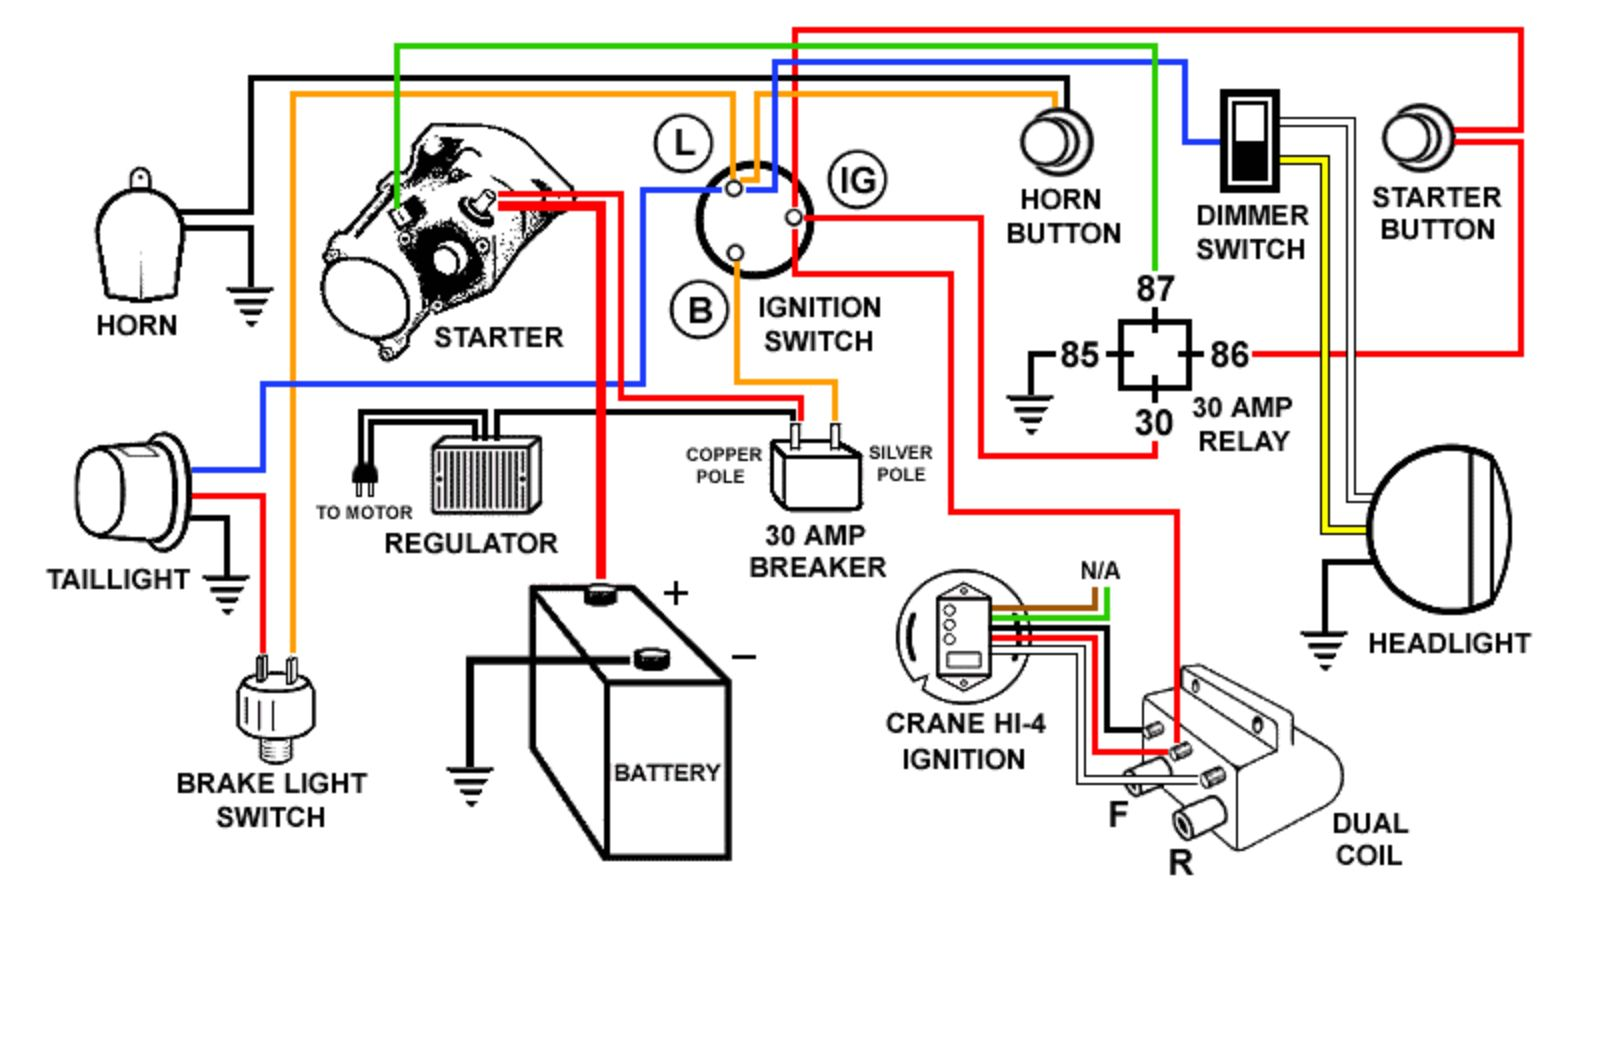 Pin By Jim Hayes On Temporales Motorcycle Wiring Electrical Wiring Diagram Electrical Diagram